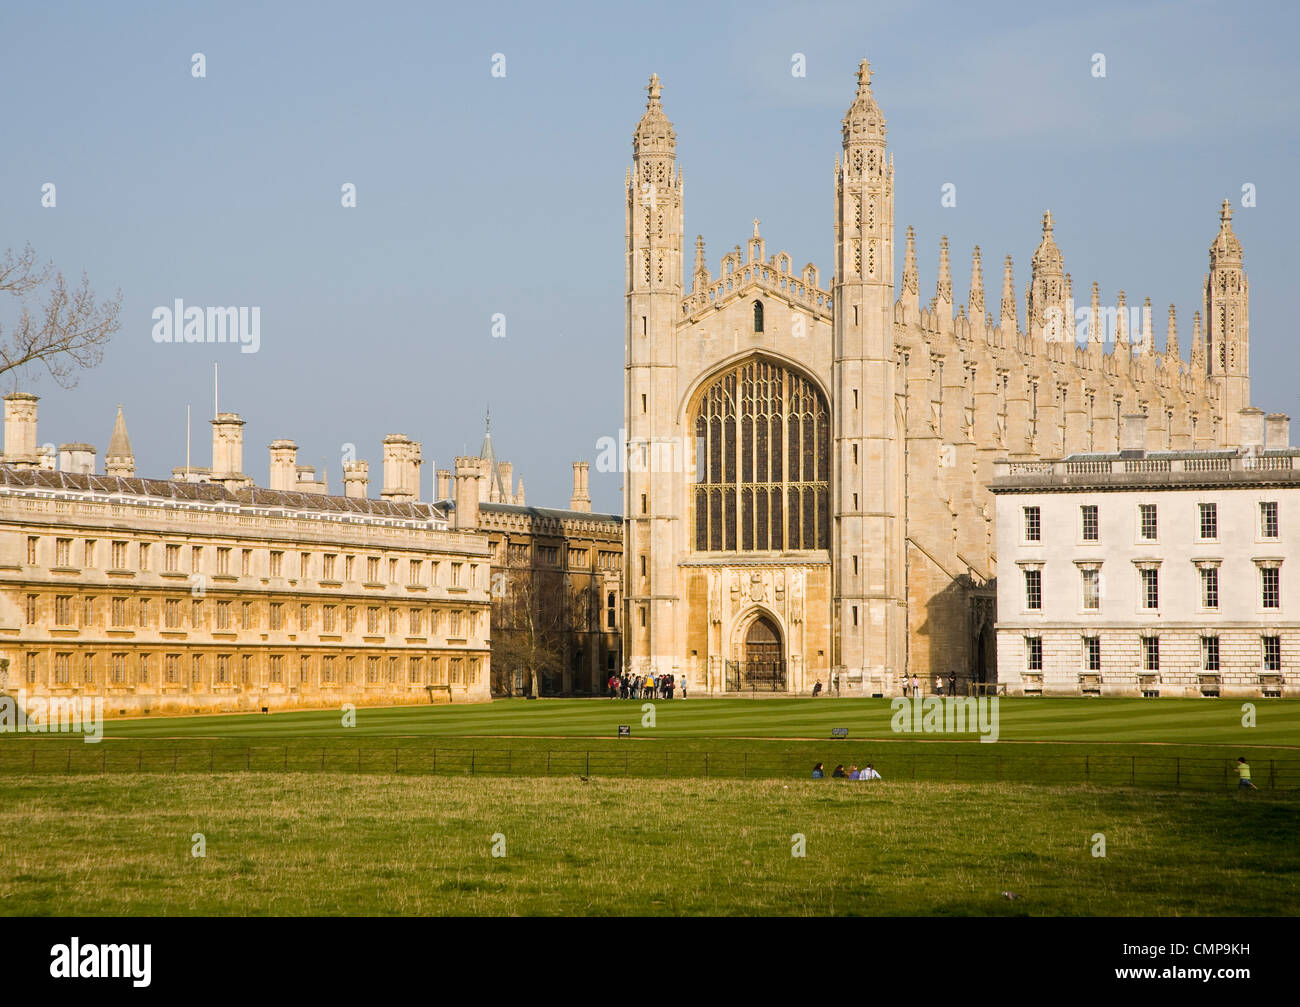 View over the Backs to King's College Cambridge university England - Stock Image